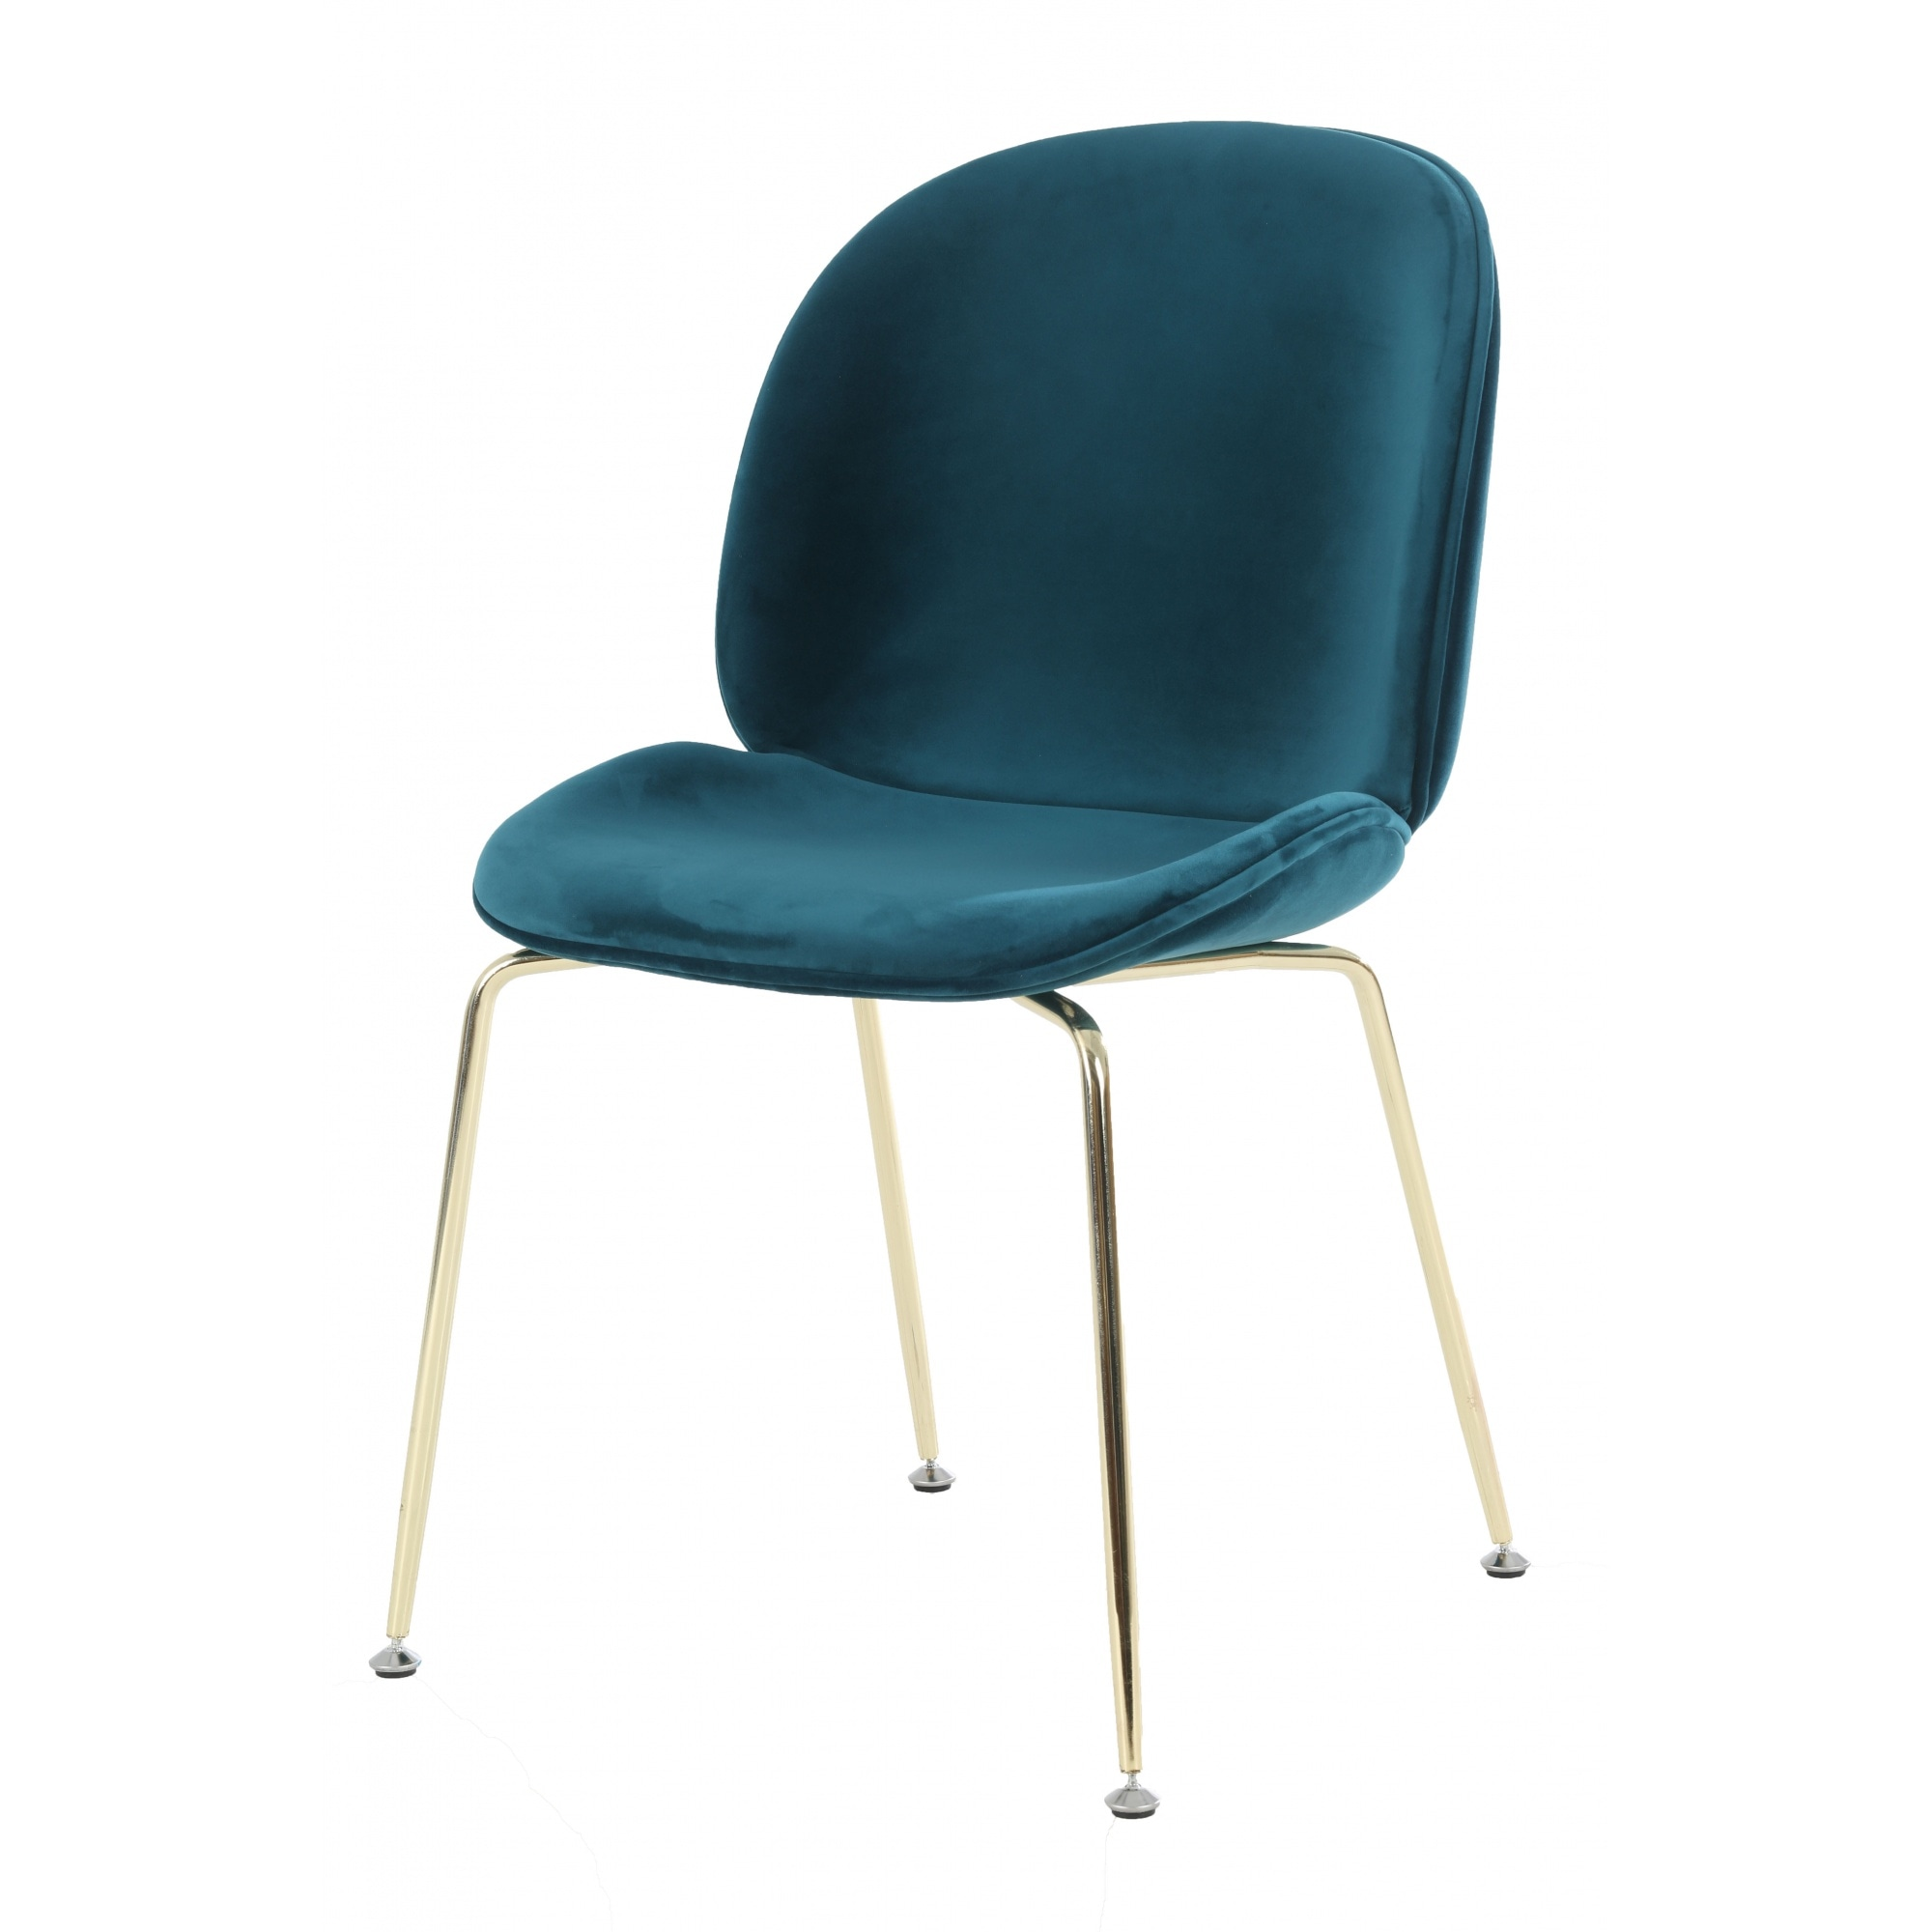 Luxurious Teal Velvet Dining Chair With Gold Metal Legs From Fusion